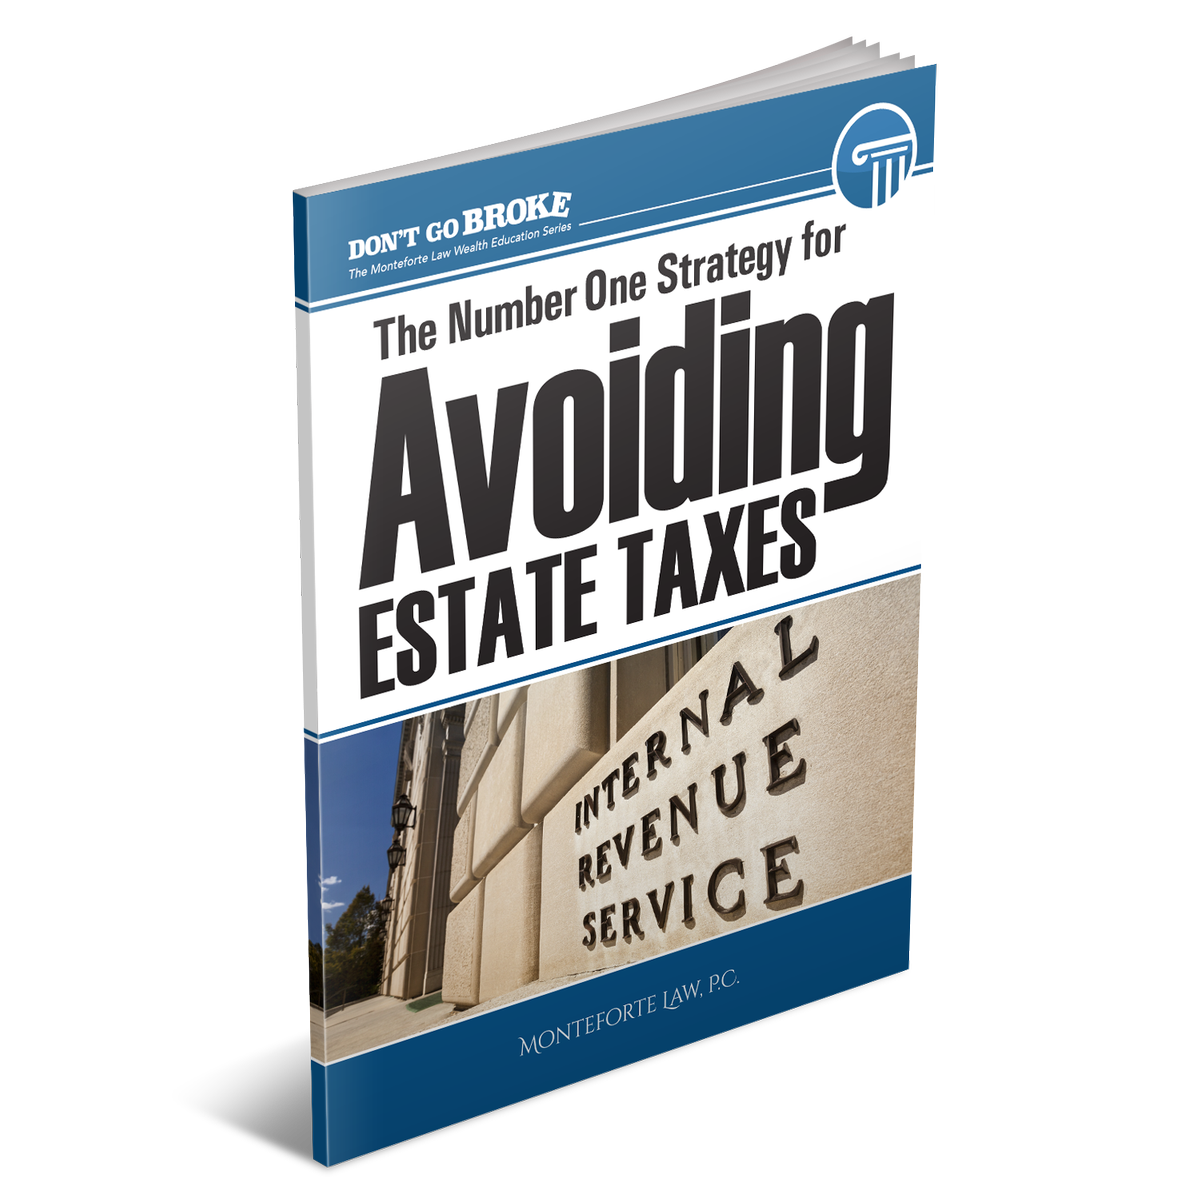 Don't give away your hard-earned money. Read our report on How to Avoid Estate Taxes